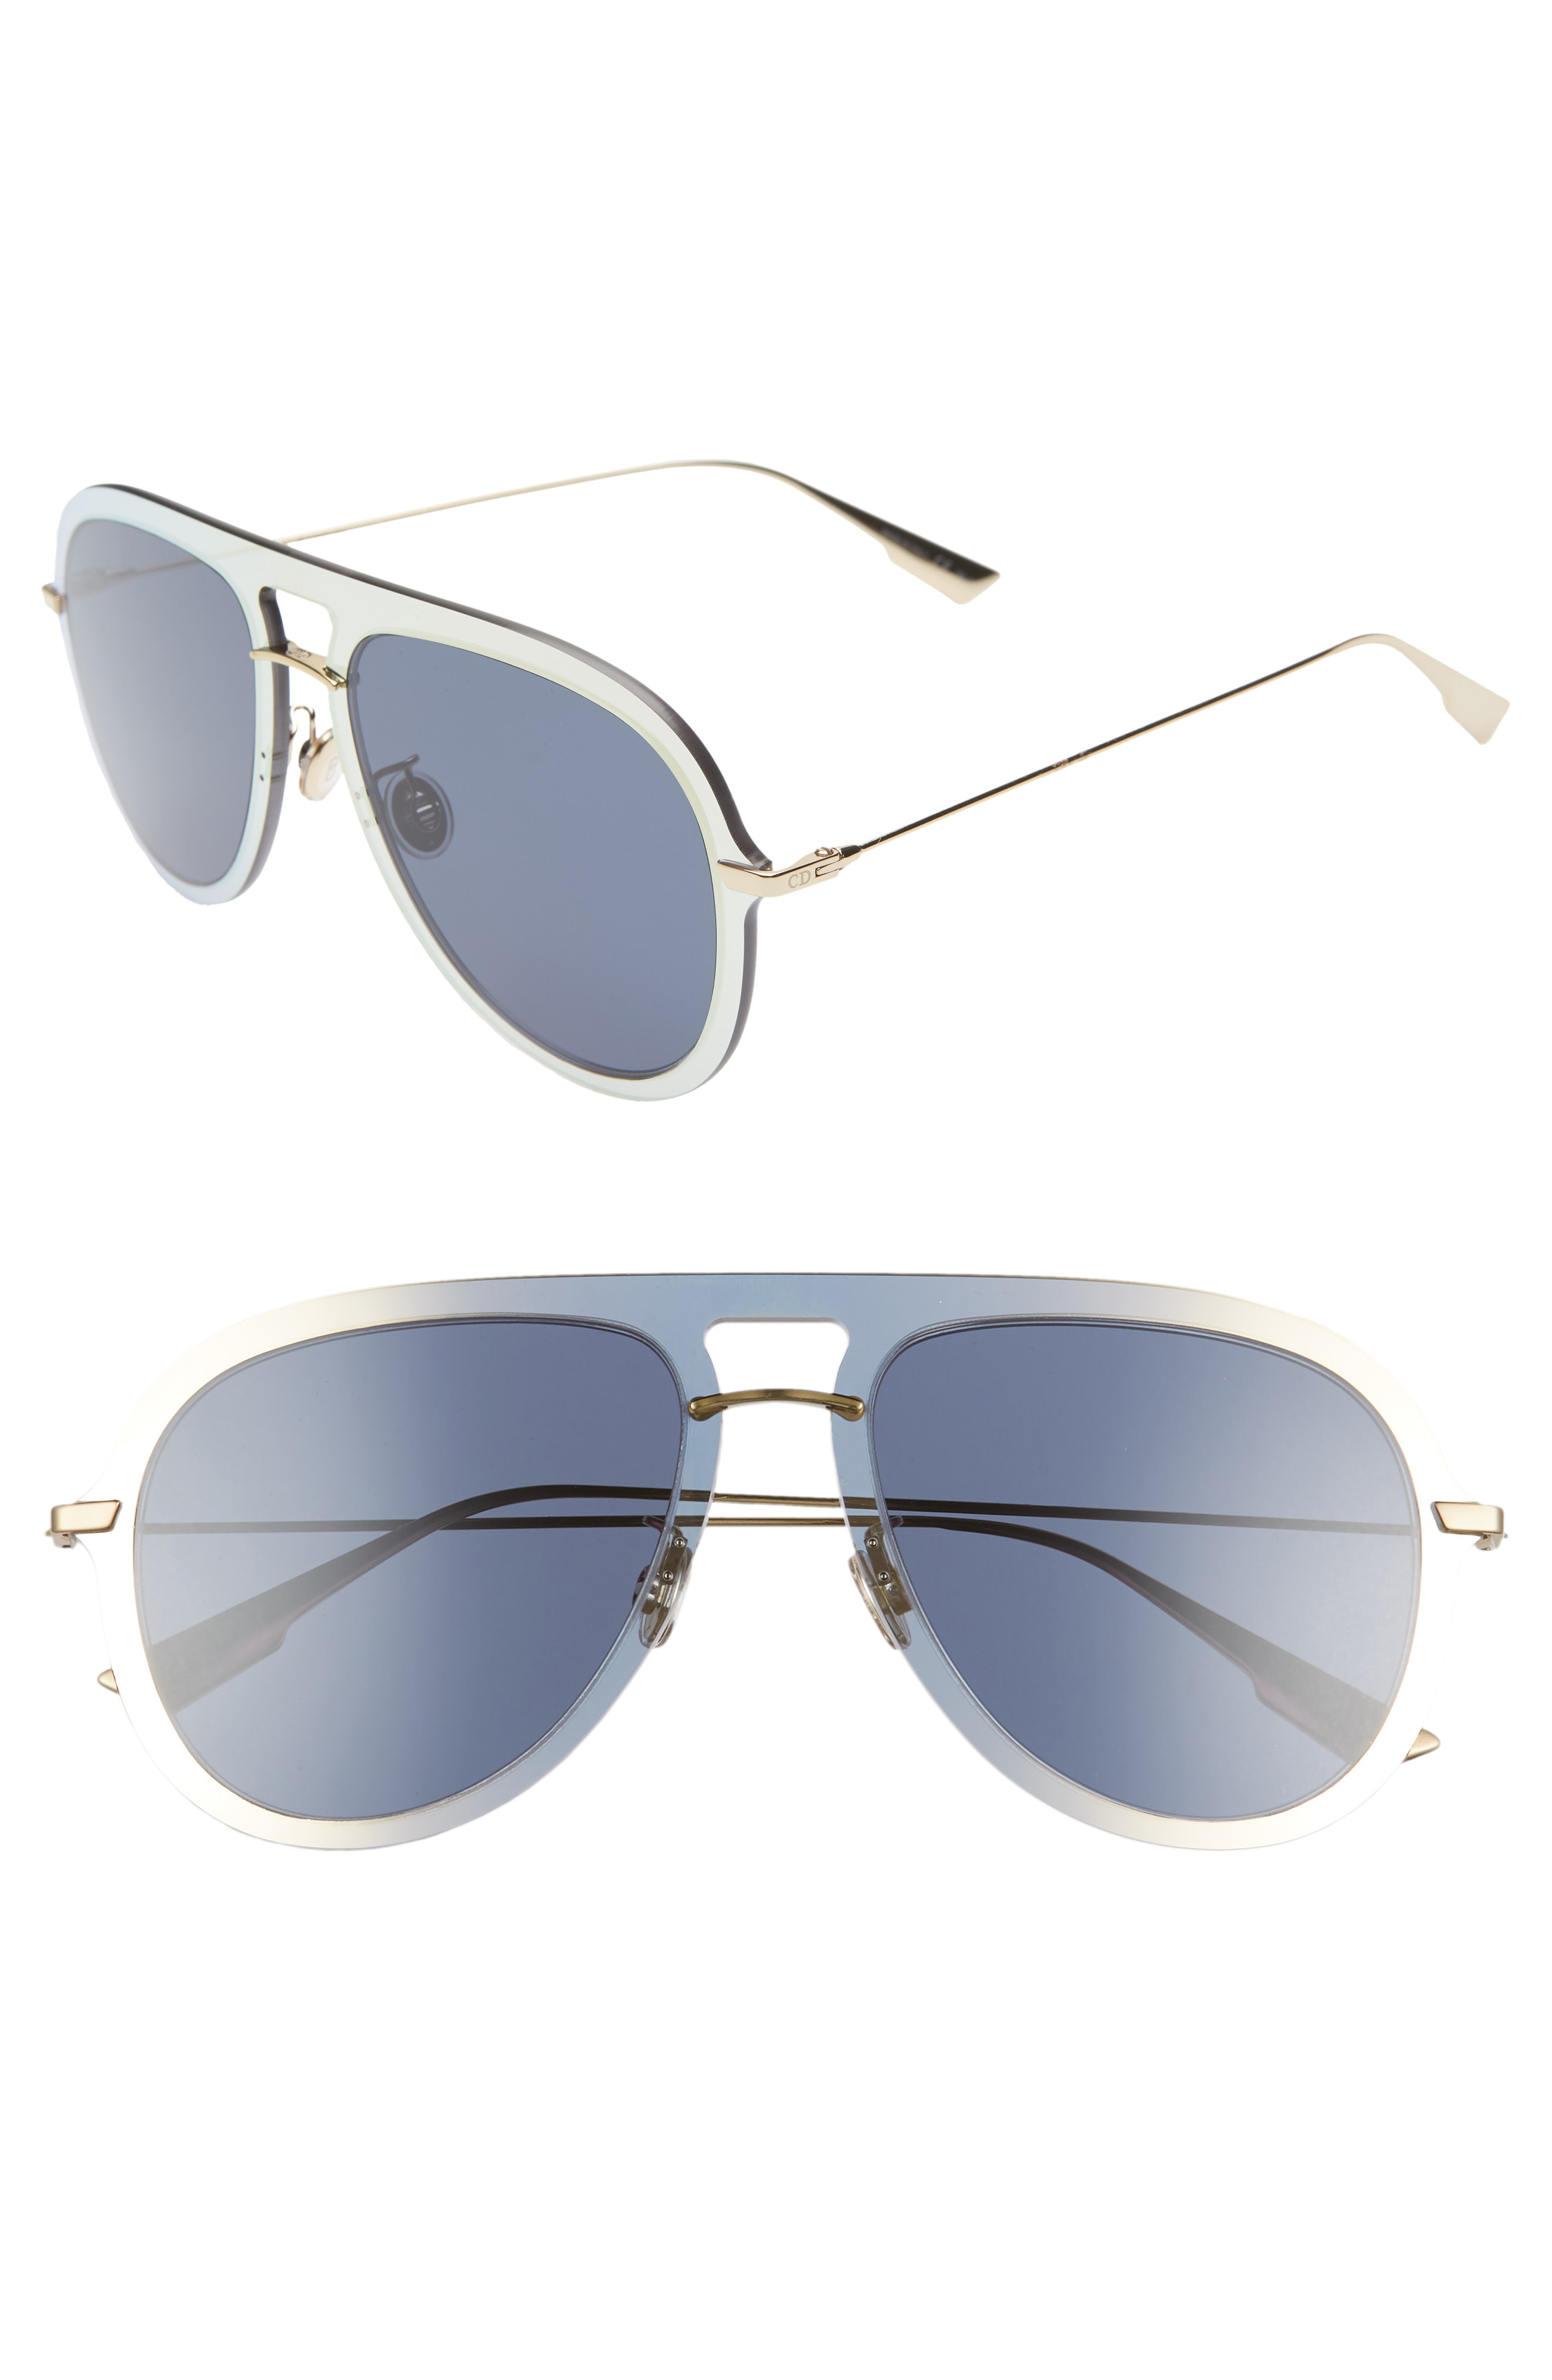 99d80004e46 Dior Ultime1 57Mm Aviator Sunglasses - Gold  Blue